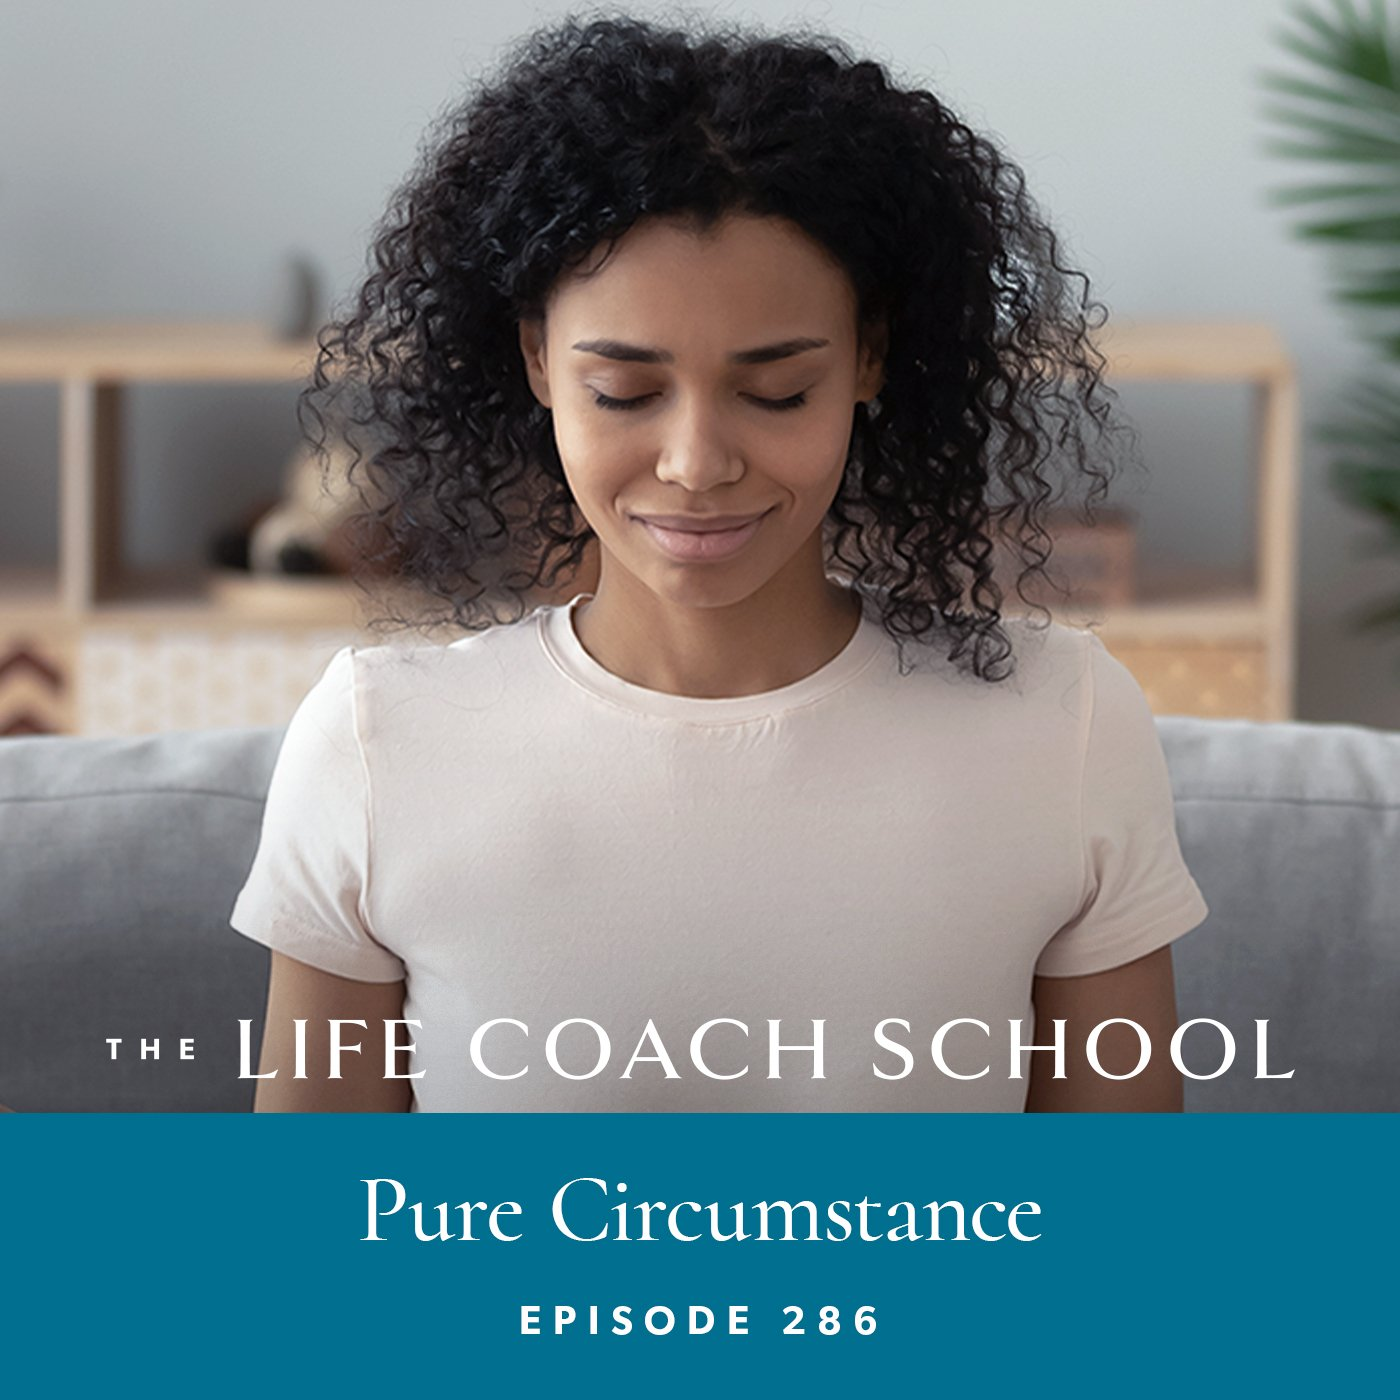 The Life Coach School Podcast with Brooke Castillo | Episode 286 | Pure Circumstance